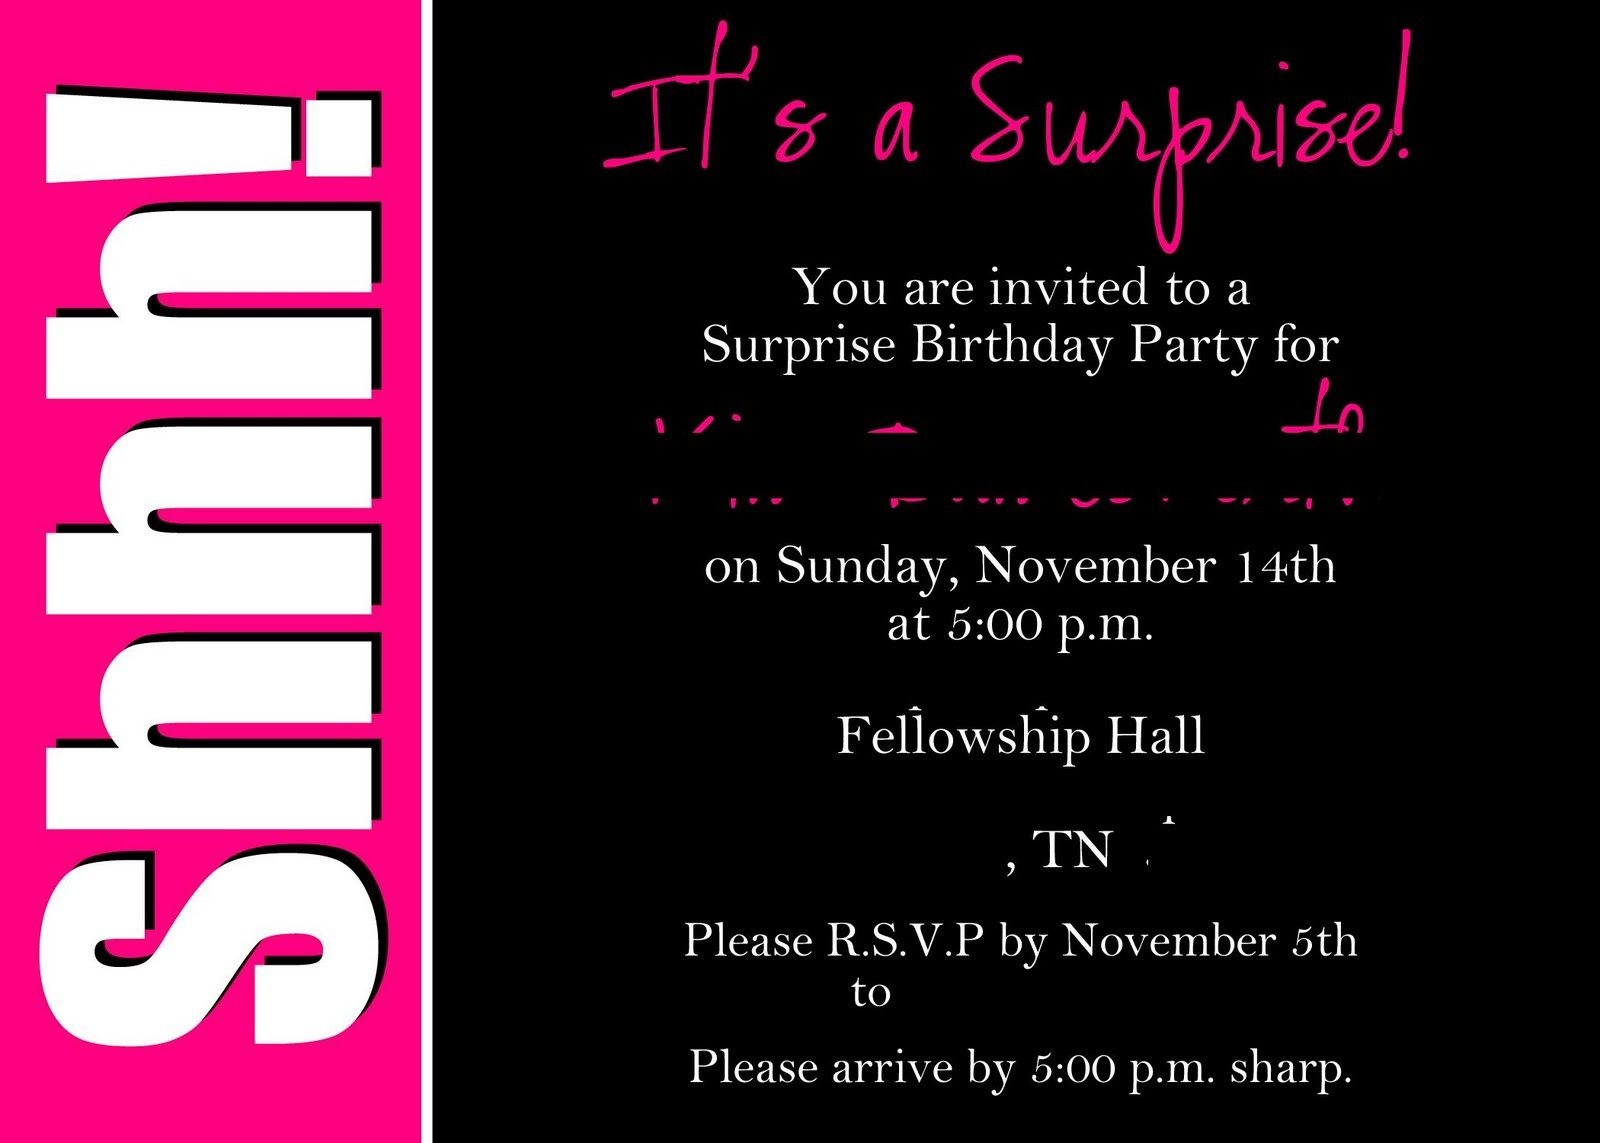 40Th Surprise Birthday Party Invitations   Free Printable Birthday - Free Printable Surprise Party Invitations